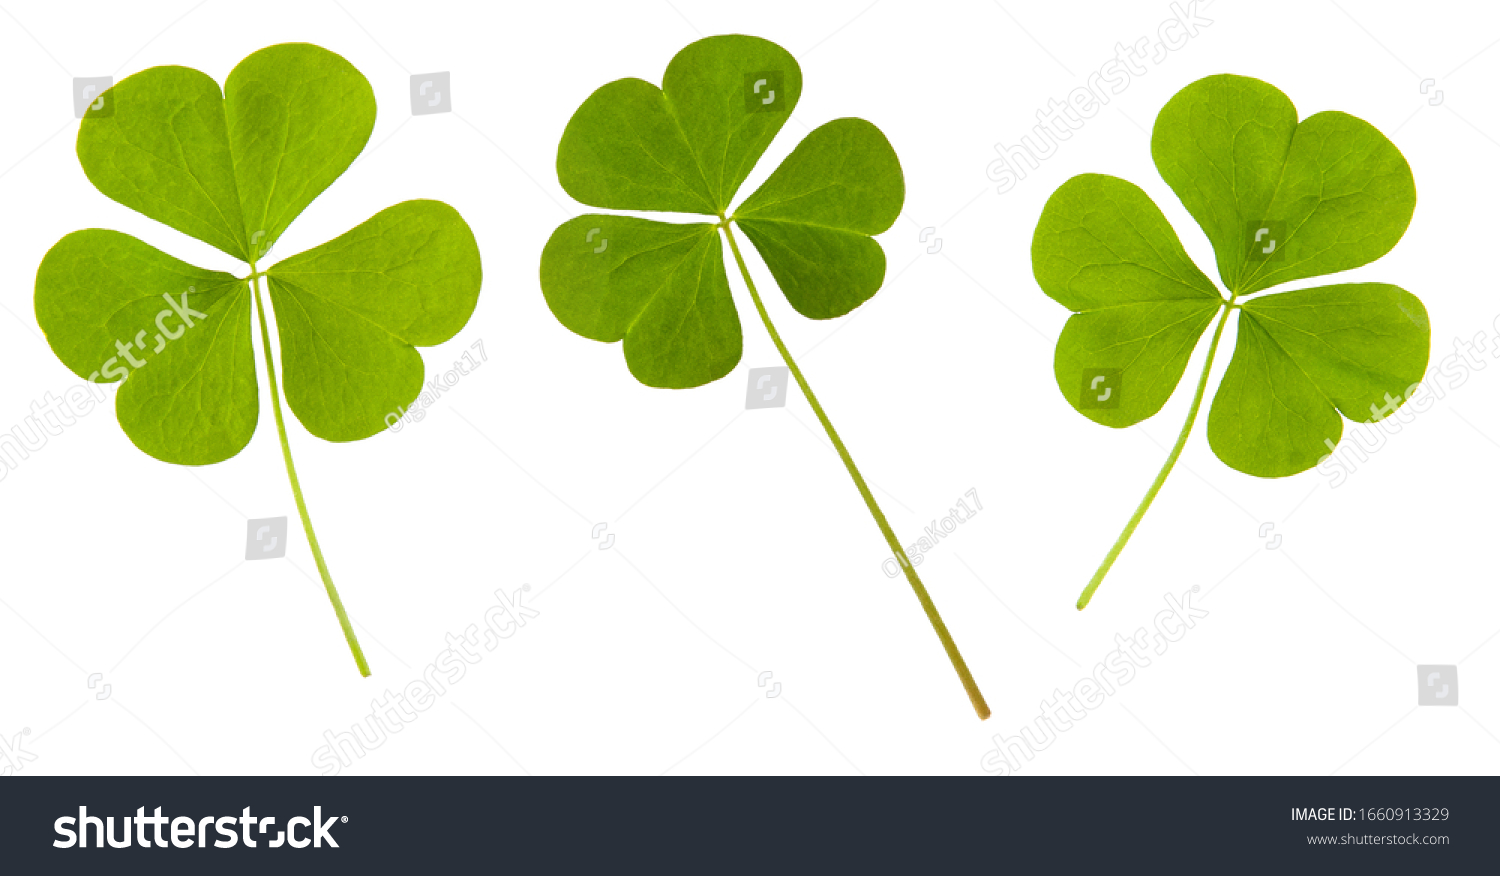 Clover green leaf set isolated on white background #1660913329